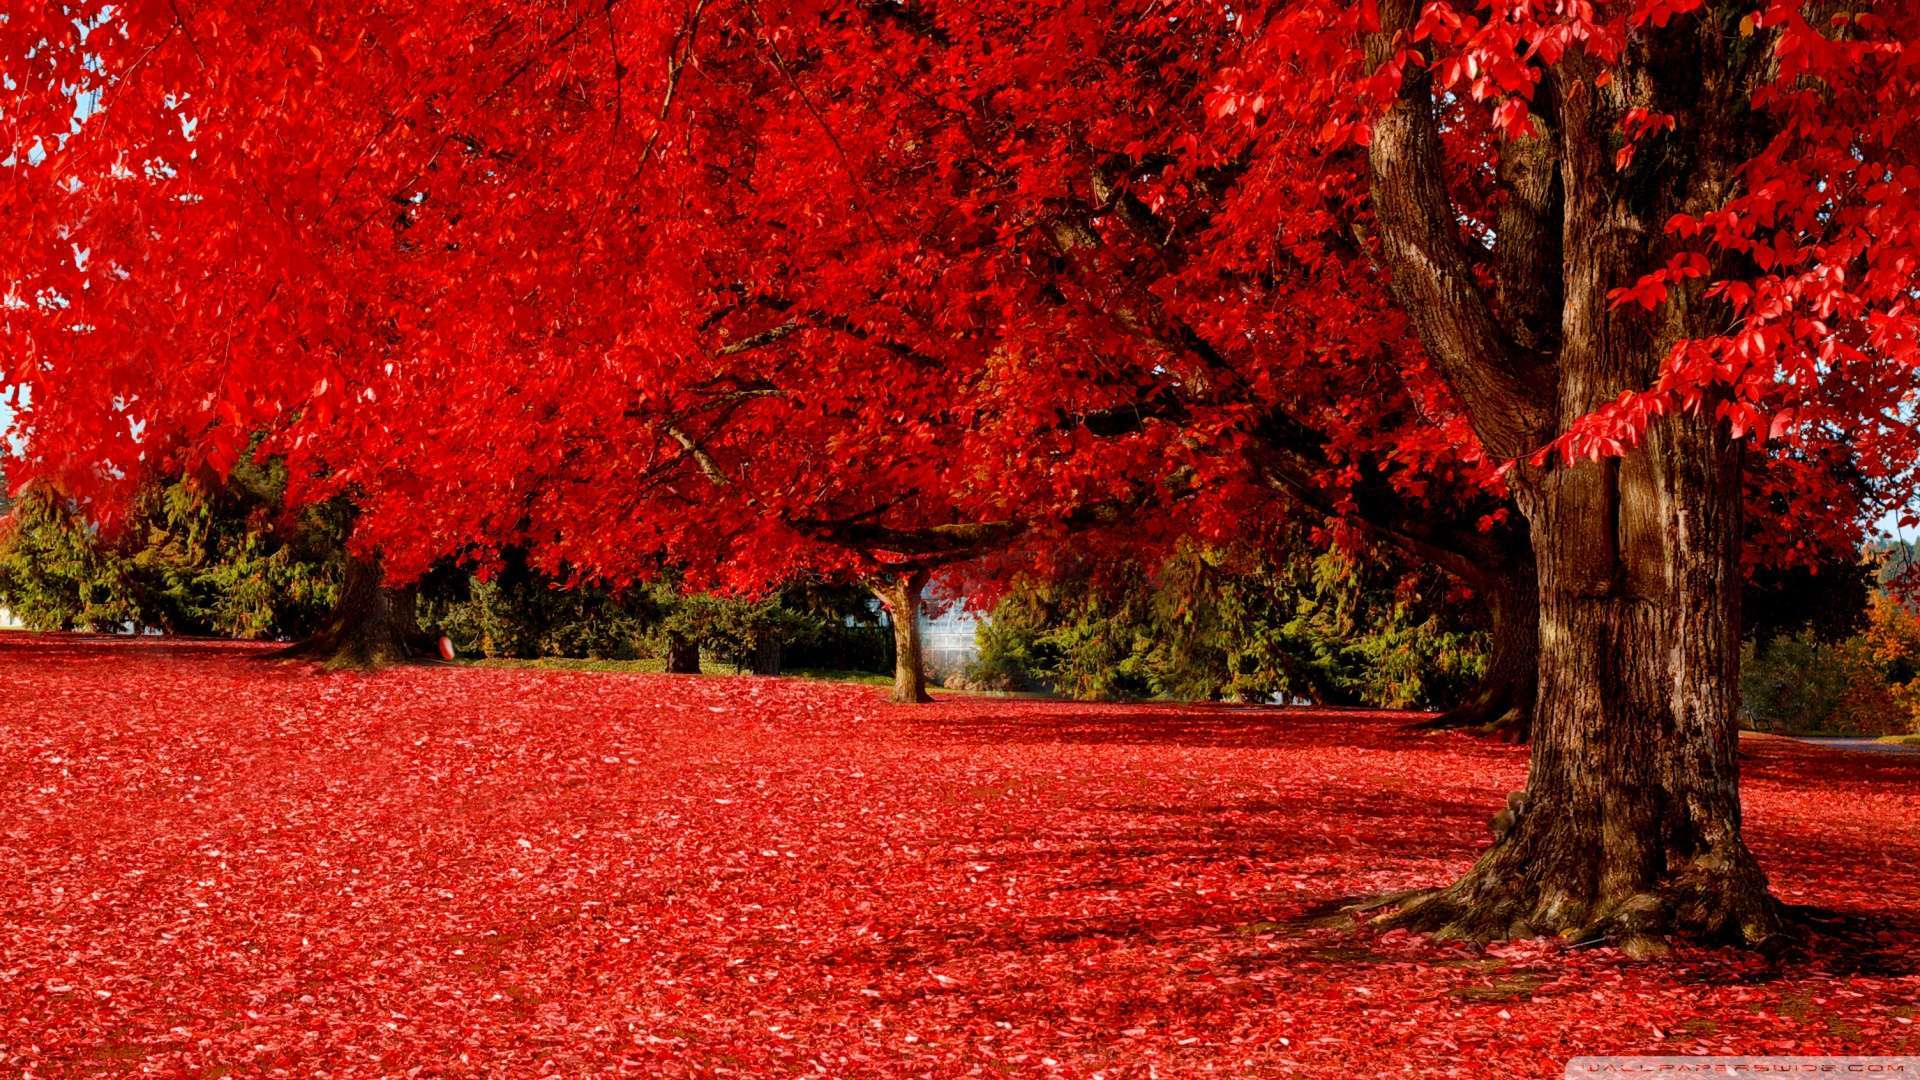 Wallpaper Red Autumn 2 Wallpaper 1080p HD Upload at February 16 1920x1080